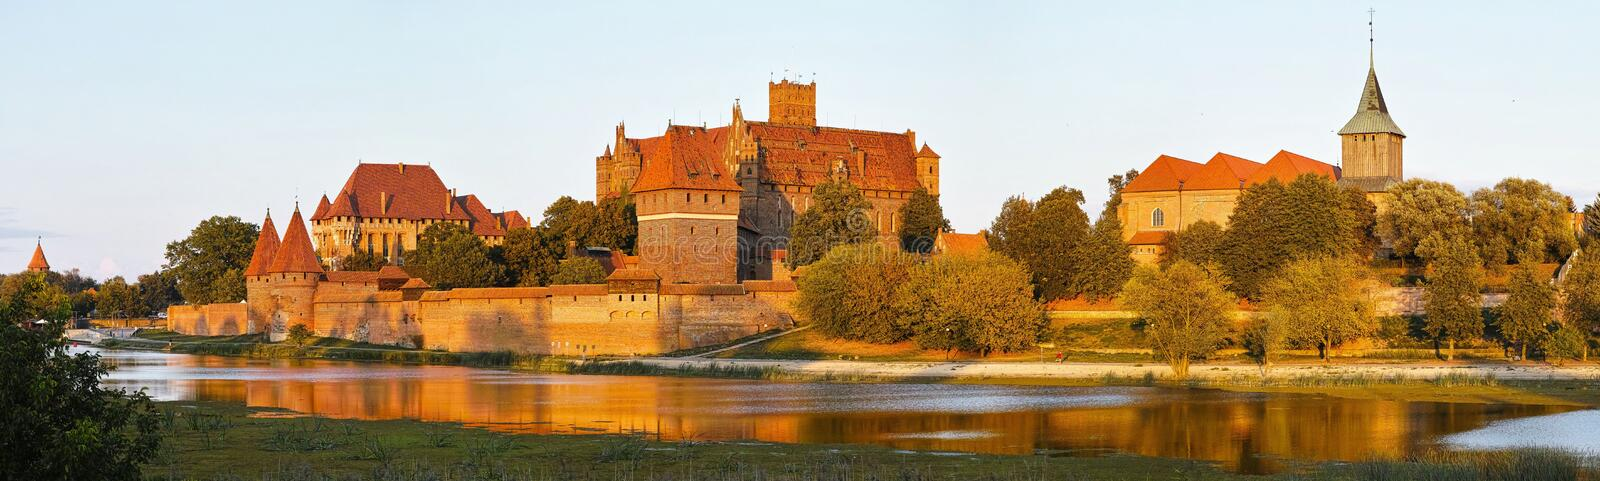 View of Malbork castle in Poland royalty free stock image